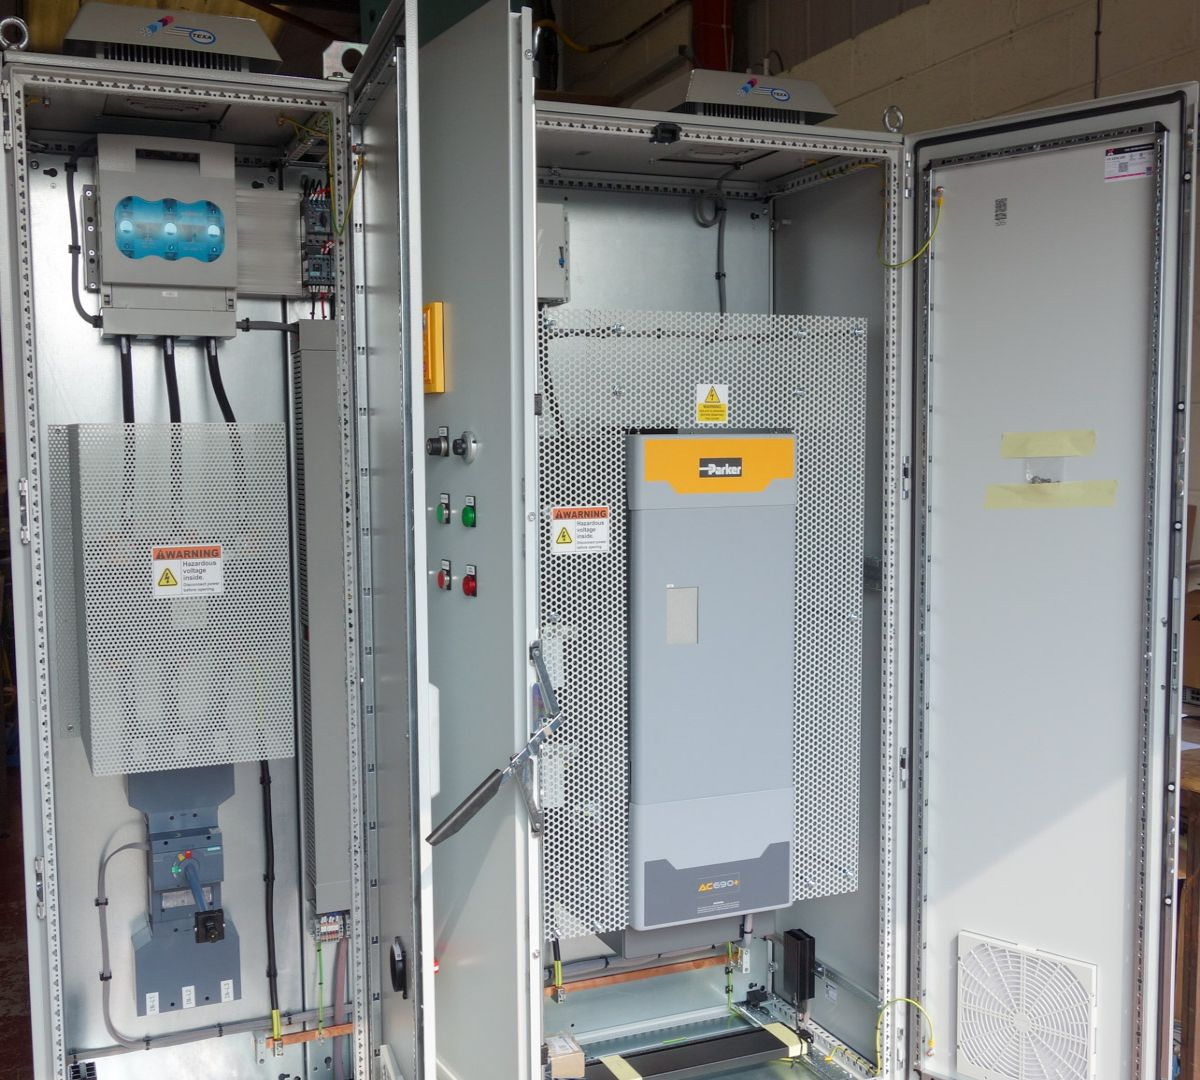 180kW Parker drives for extruder applications